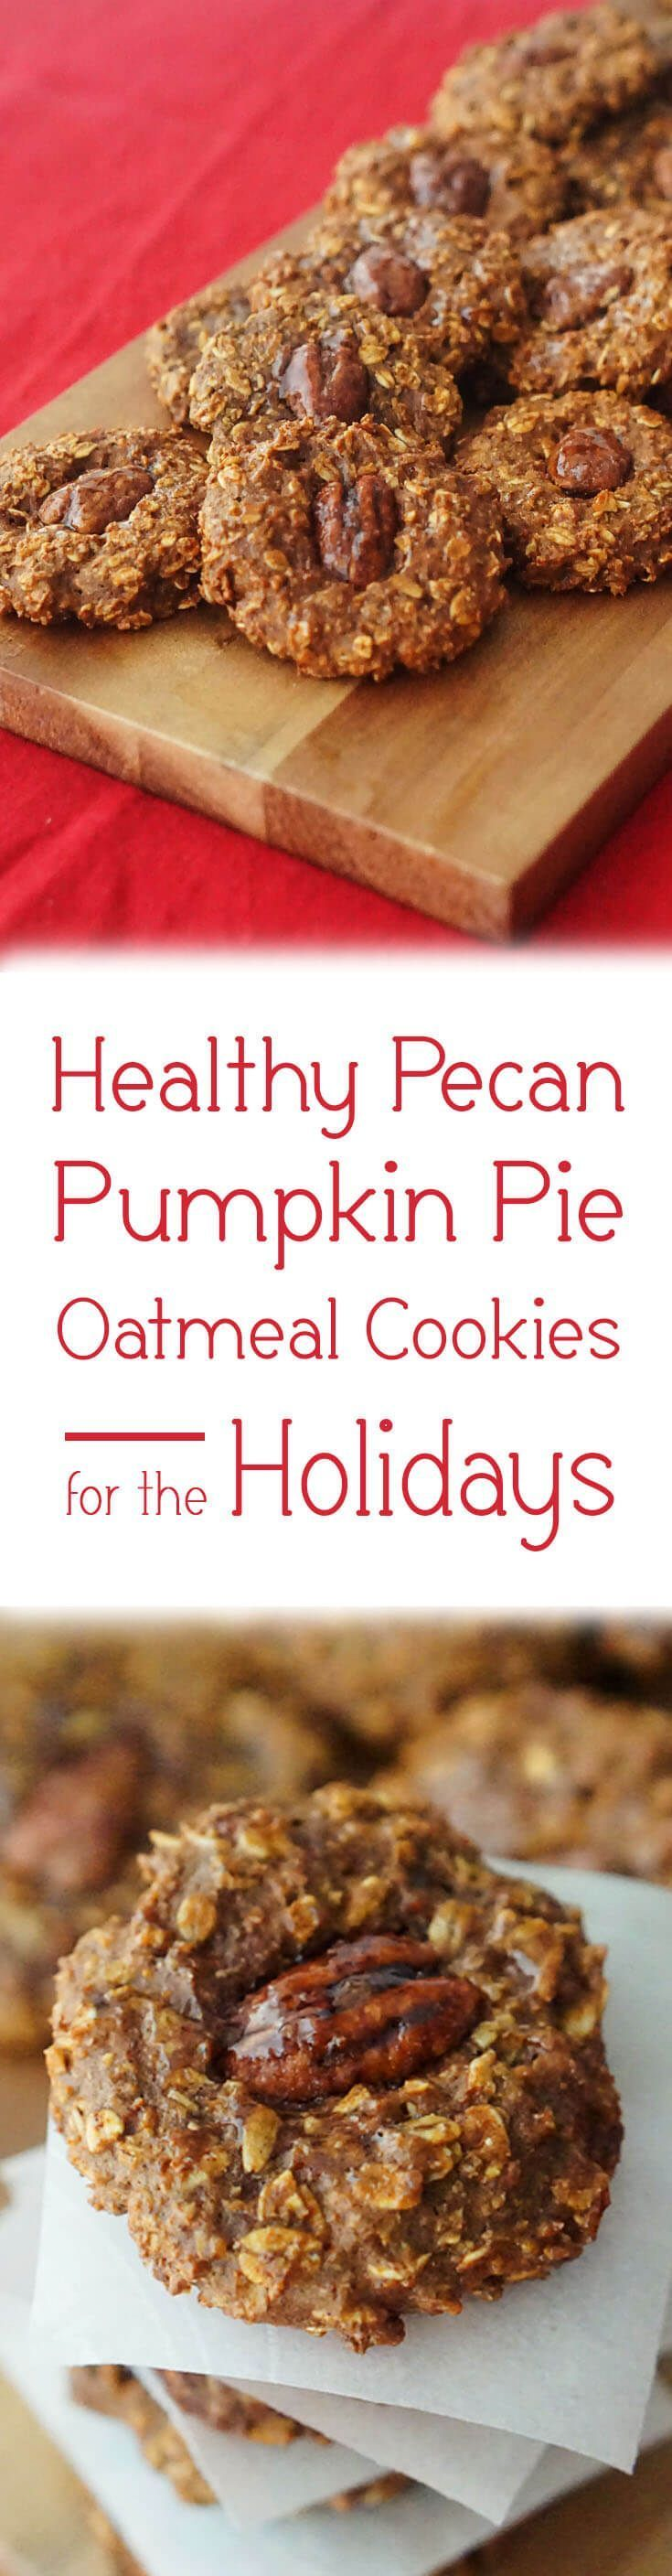 These Pecan Pumpkin Pie Oatmeal Cookies are the perfect holiday treat.